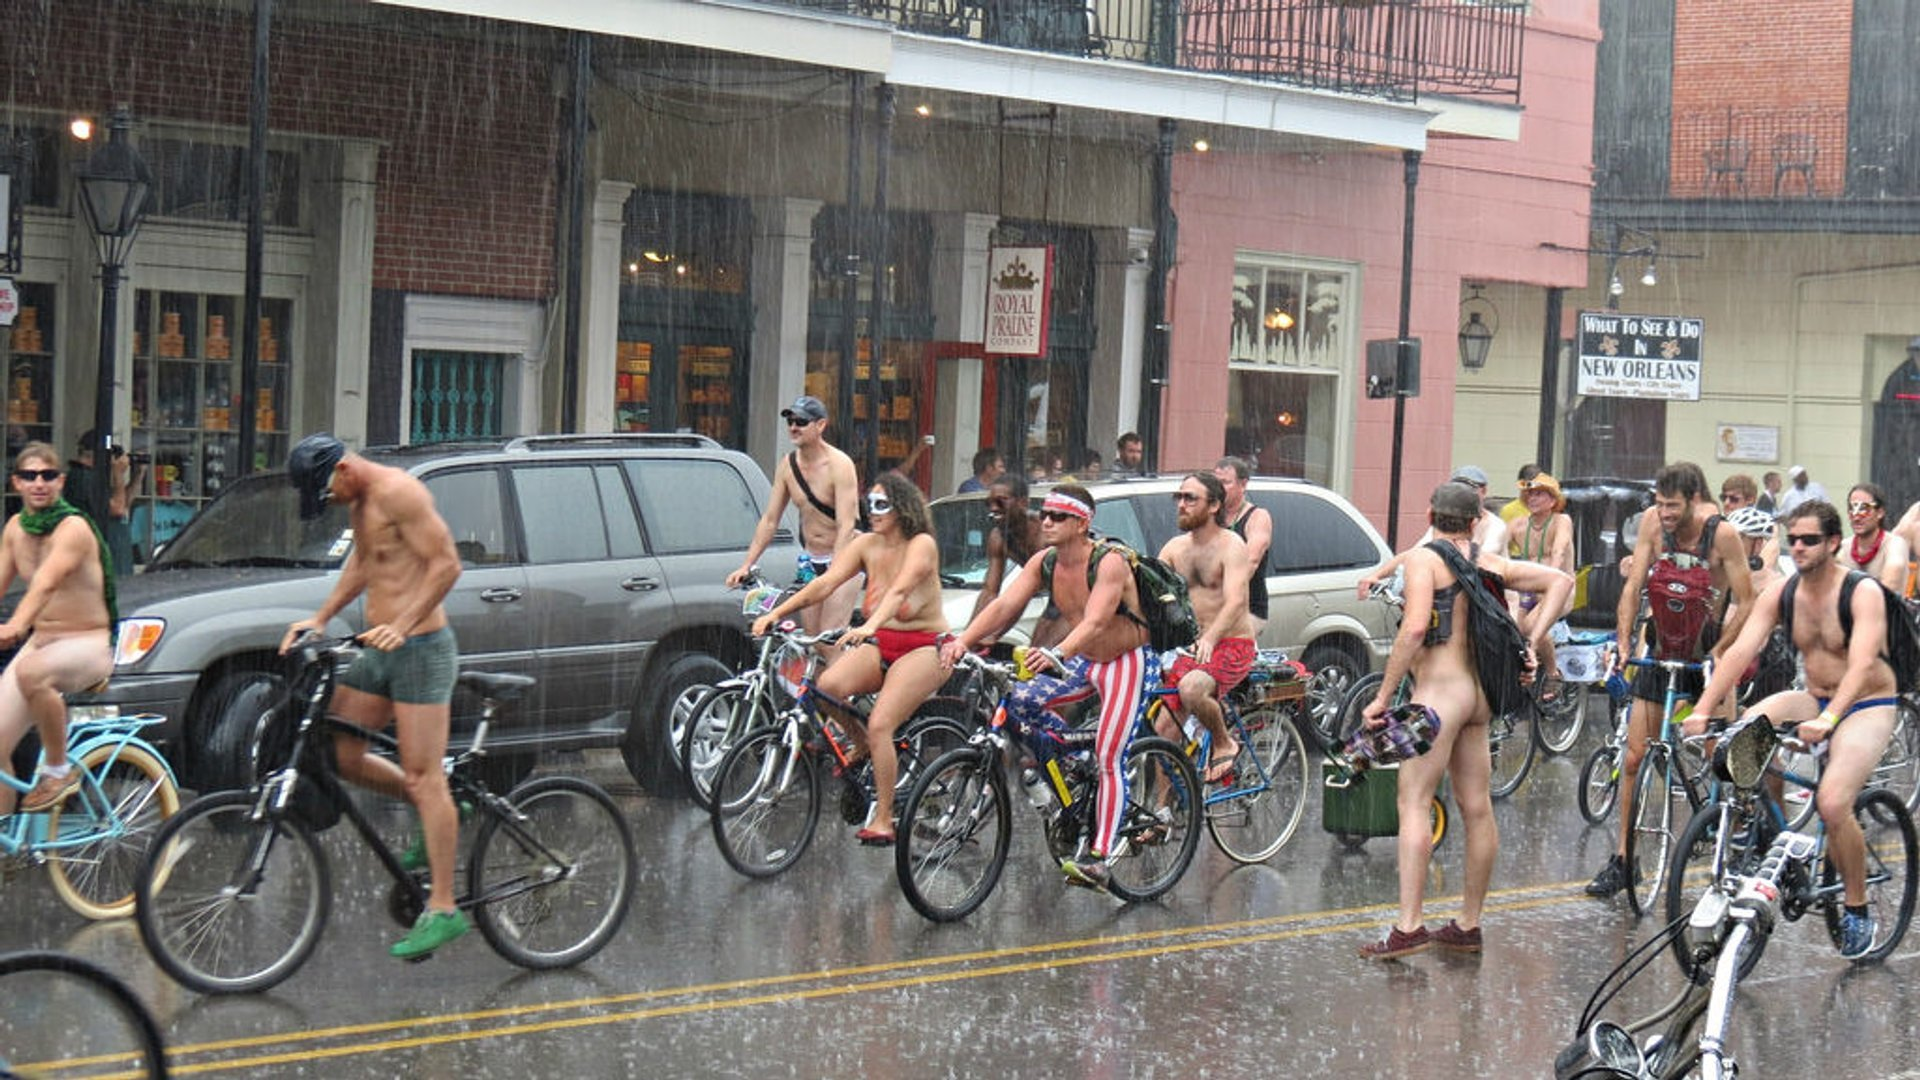 World Naked Bike Ride in New Orleans - Best Season 2020